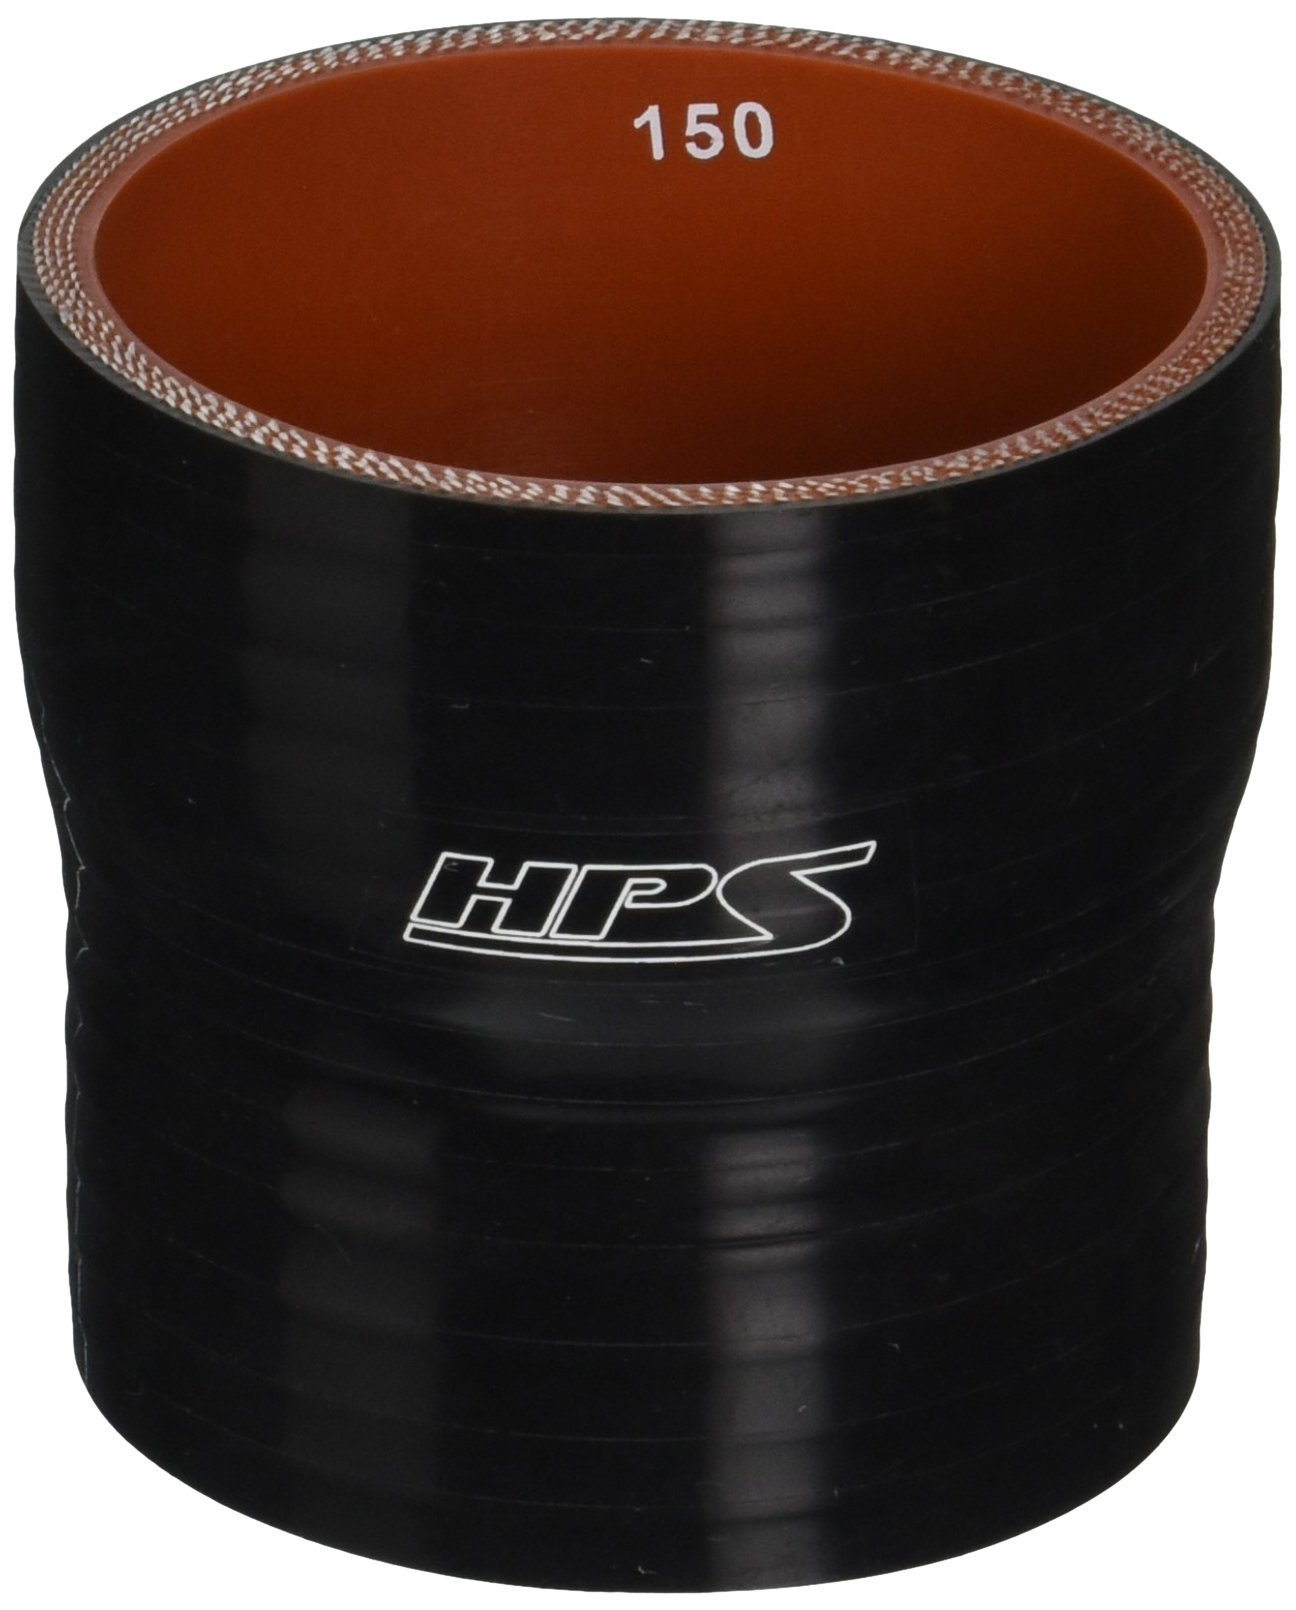 HPS HTSR-250-275-BLK Silicone High Temperature 4-ply Reinforced Reducer Coupler Hose, 50 PSI Maximum Pressure, 3'' Length, 2-1/2'' > 2-3/4'' ID, Black